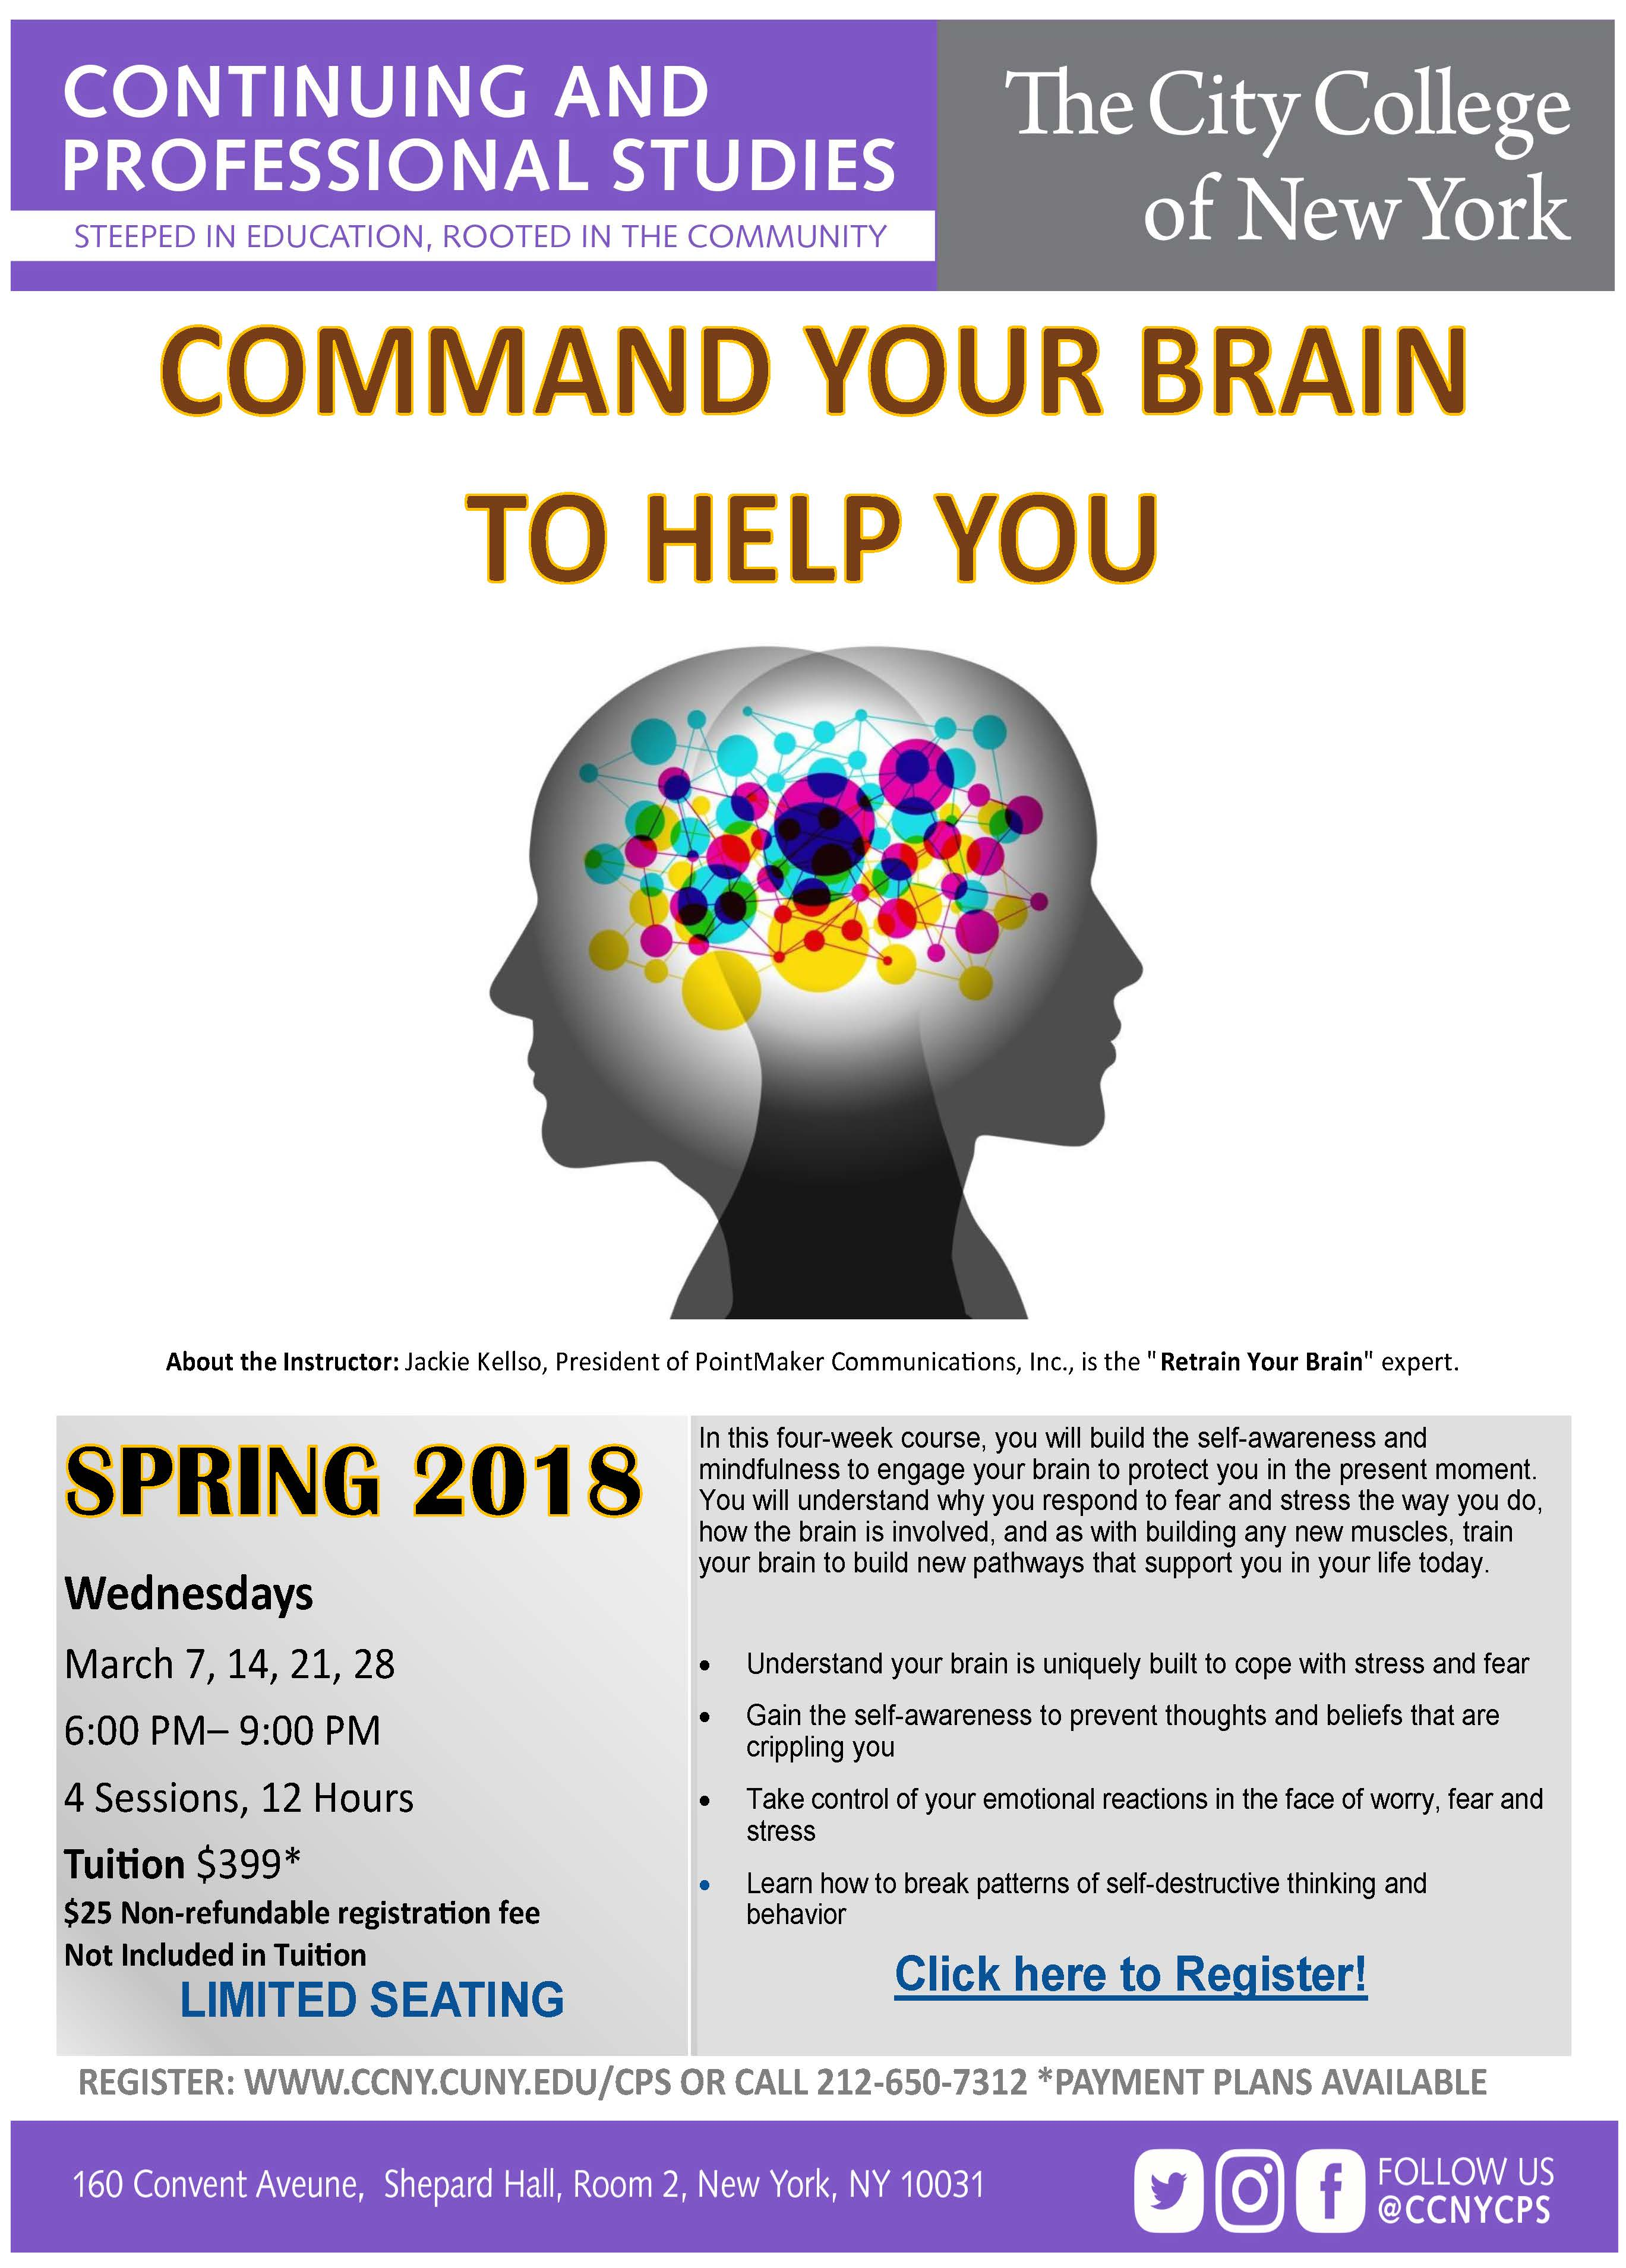 Command your brain to help new.jpg